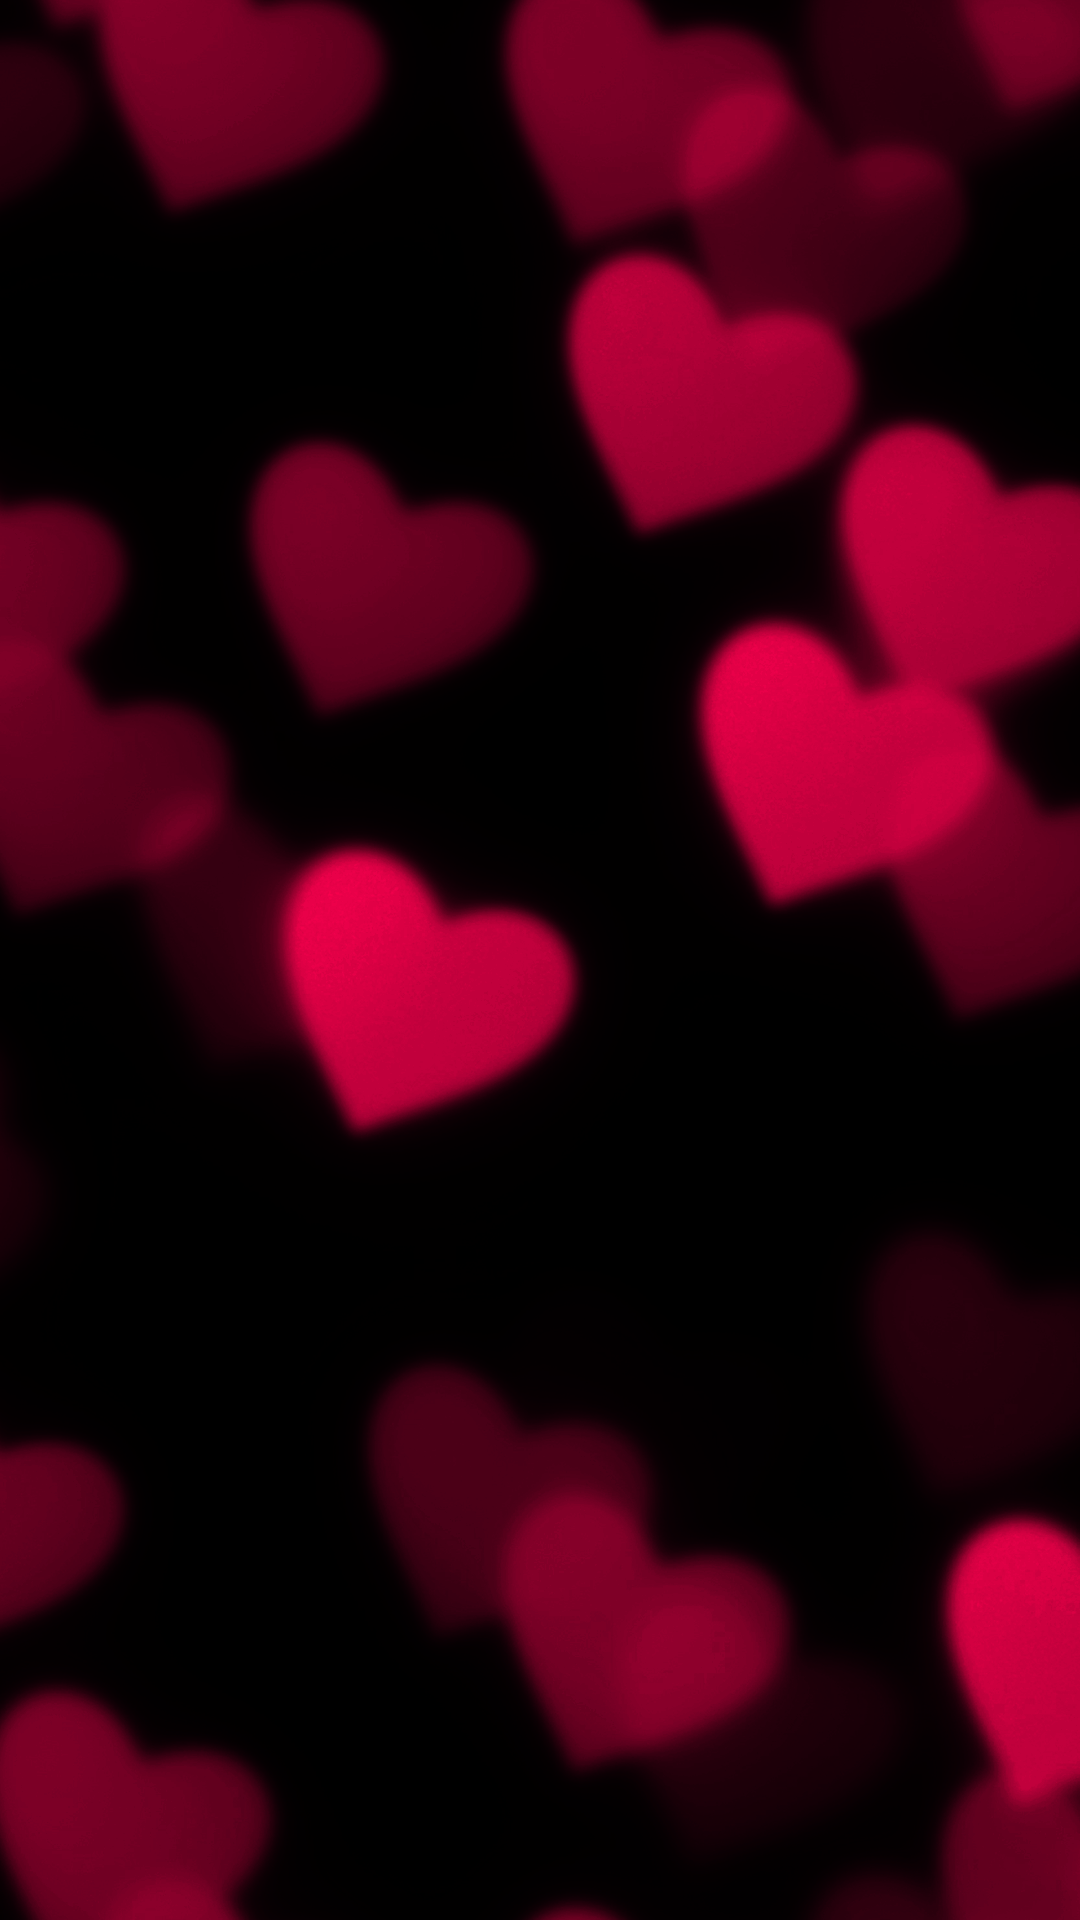 Download our hd heart bokeh wallpaper for android phones 0133 heart bokeh 1080 x 1920 fhd wallpaper heart bokeh 1080 x 1920 fhd wallpaper voltagebd Images